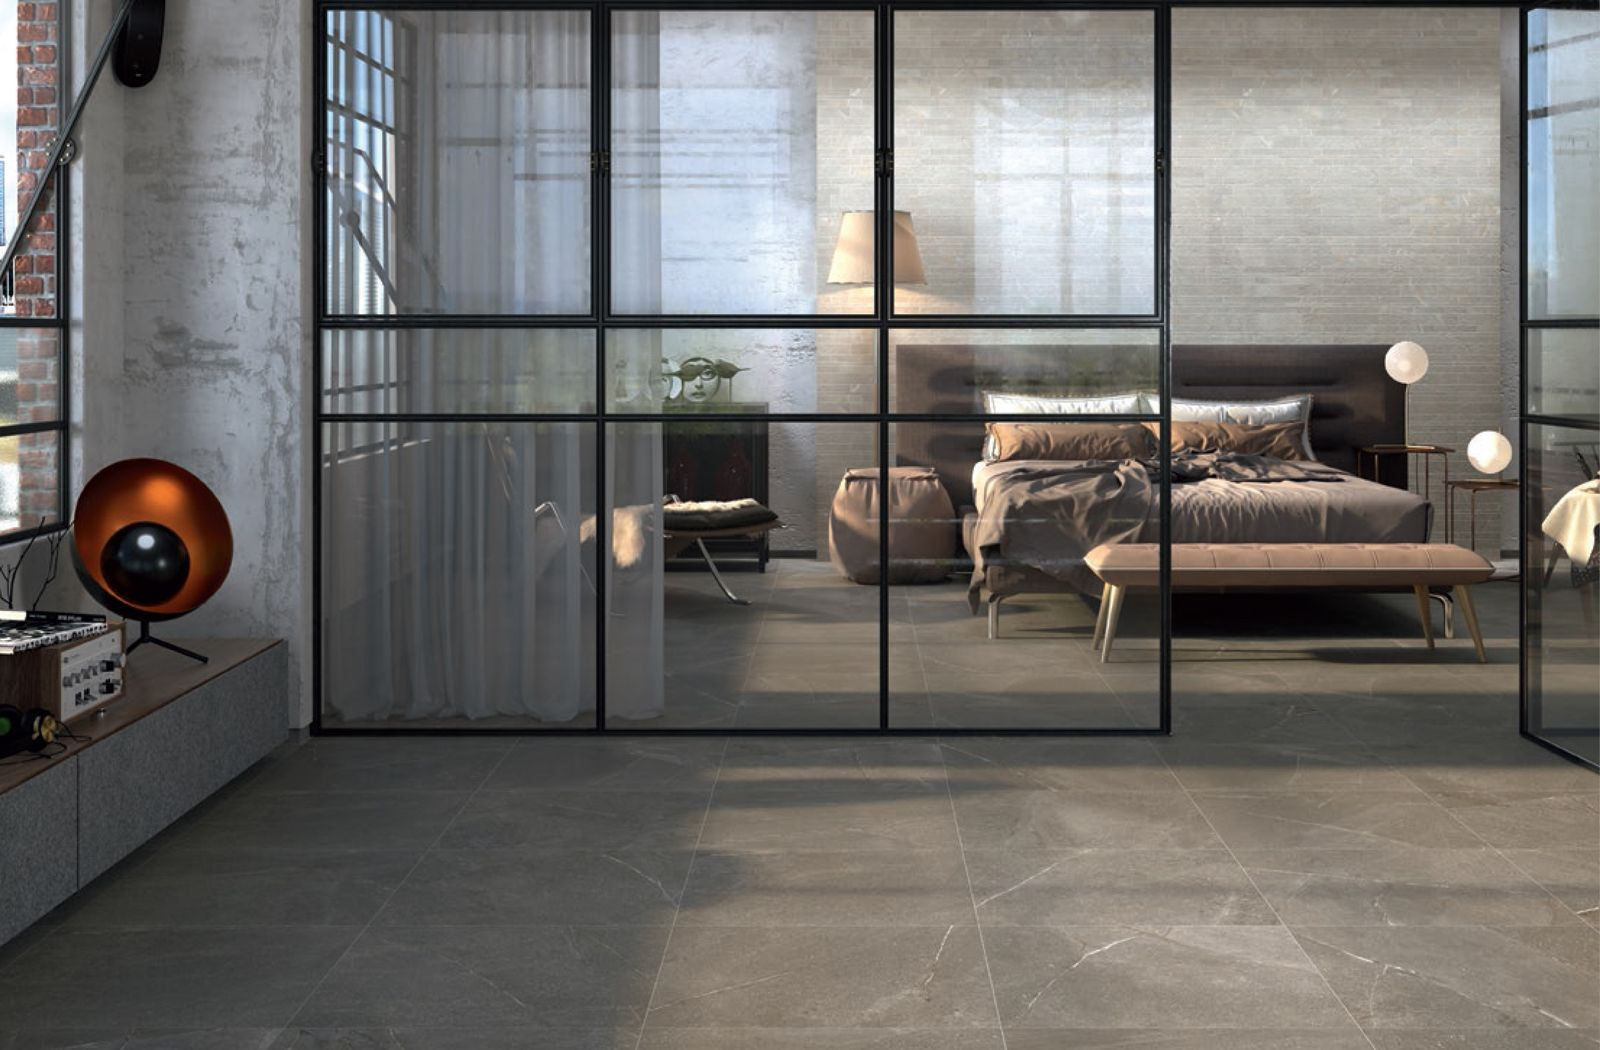 Modern Industrial Bedroom Design With Floor Tiles From Colorkers